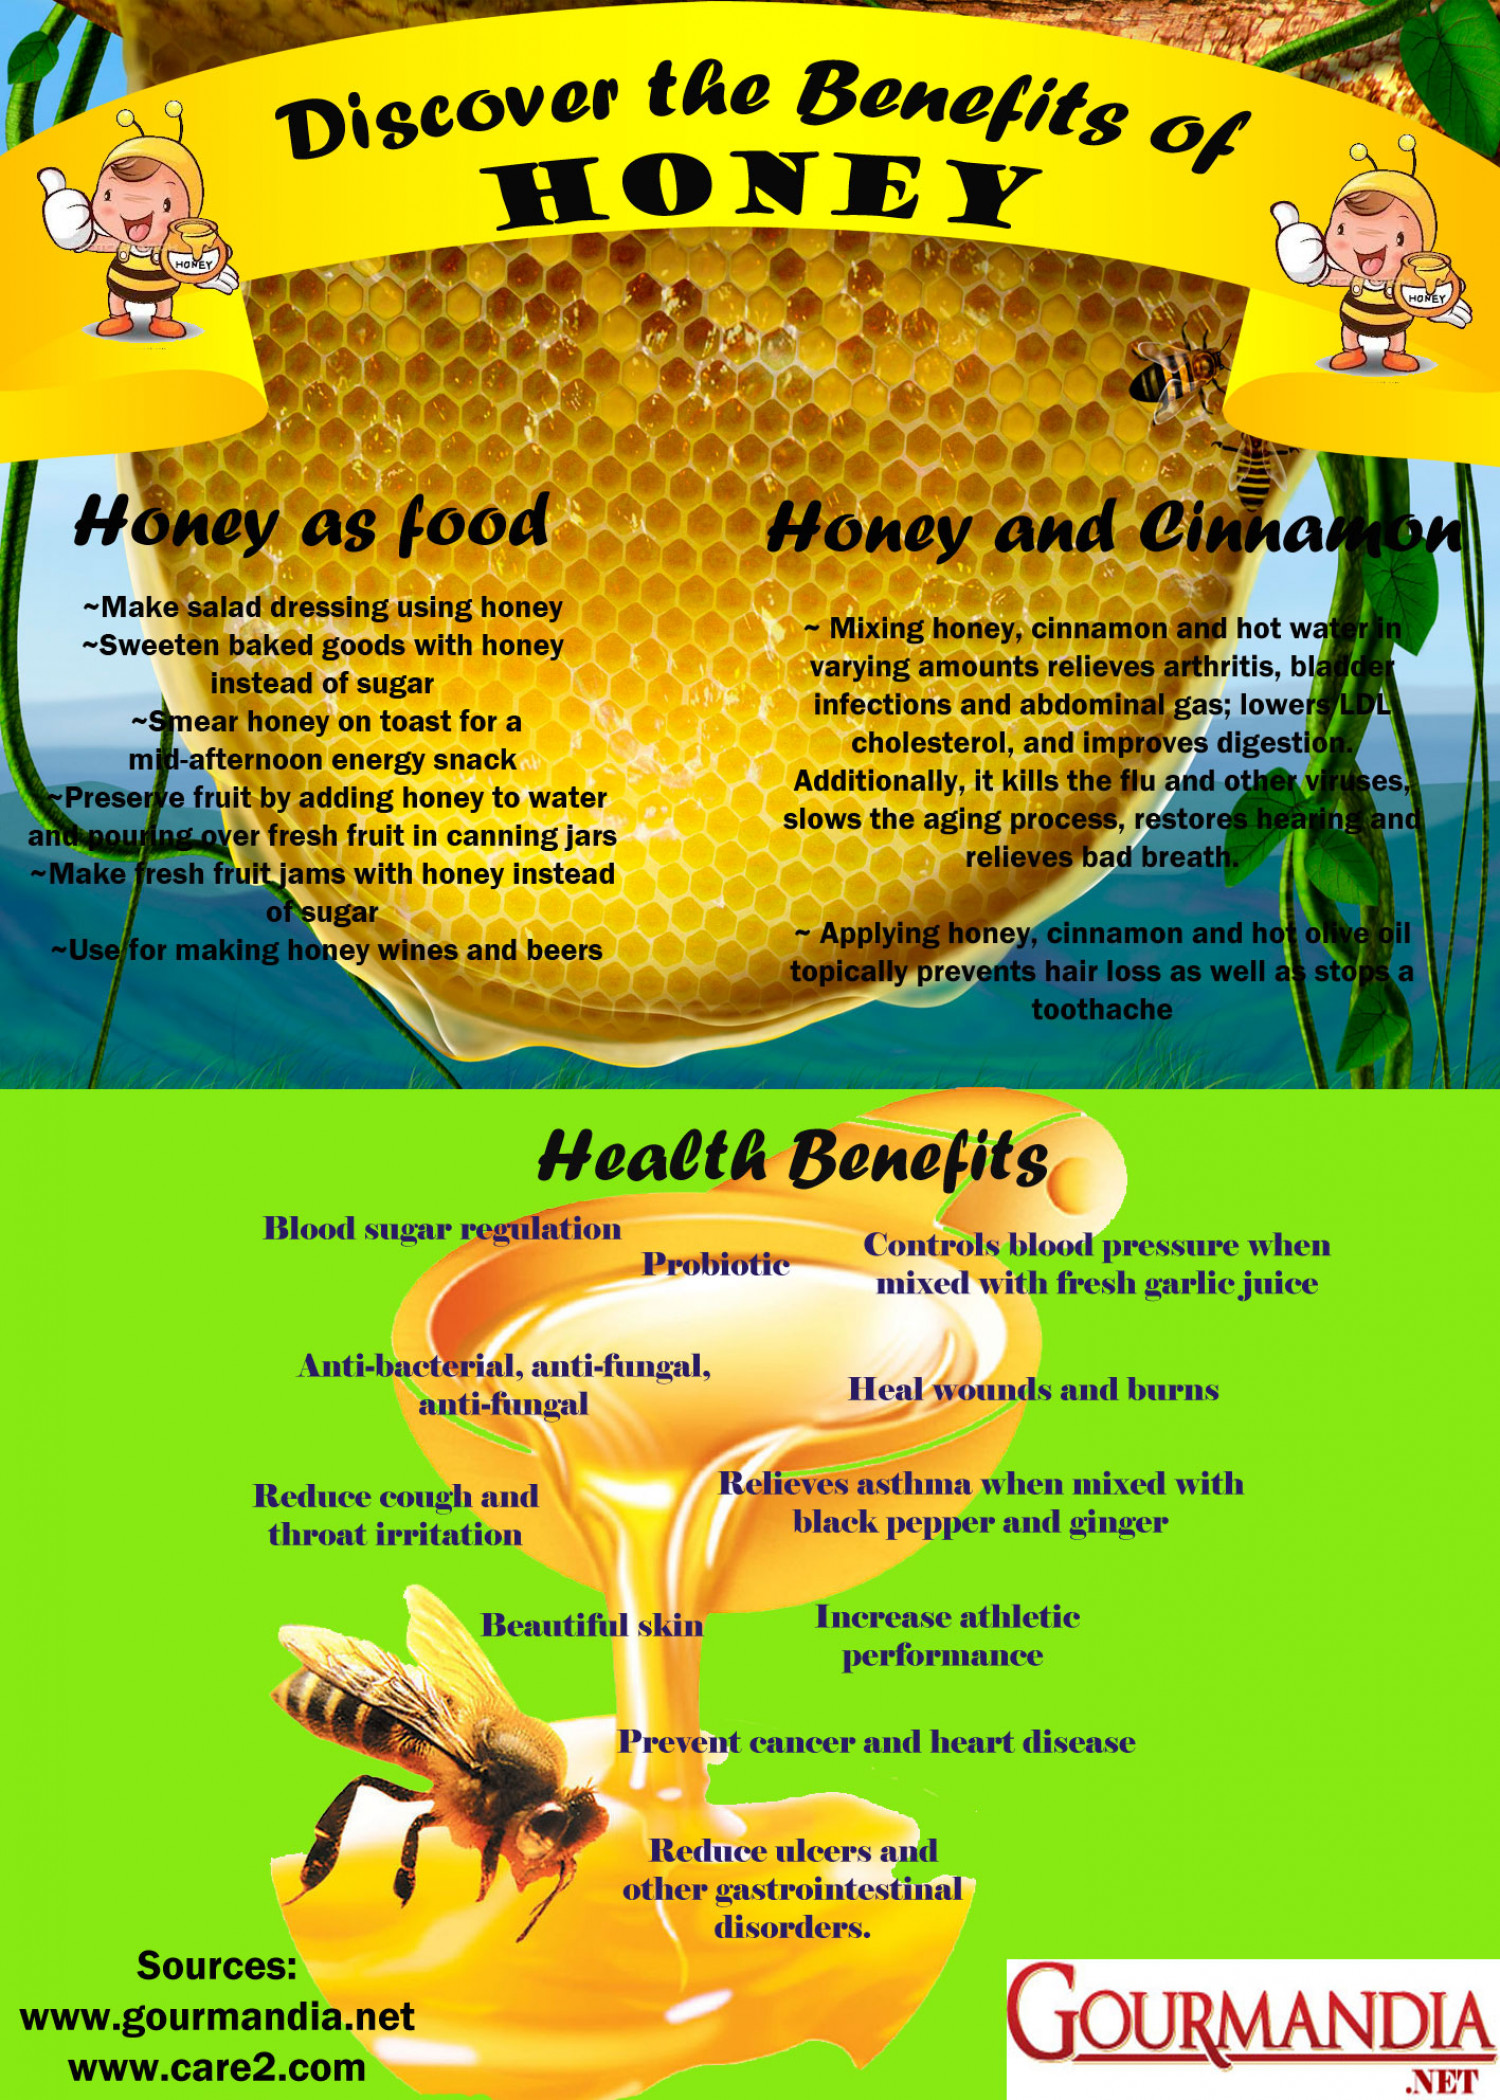 Discover the Benefits of Honey Infographic